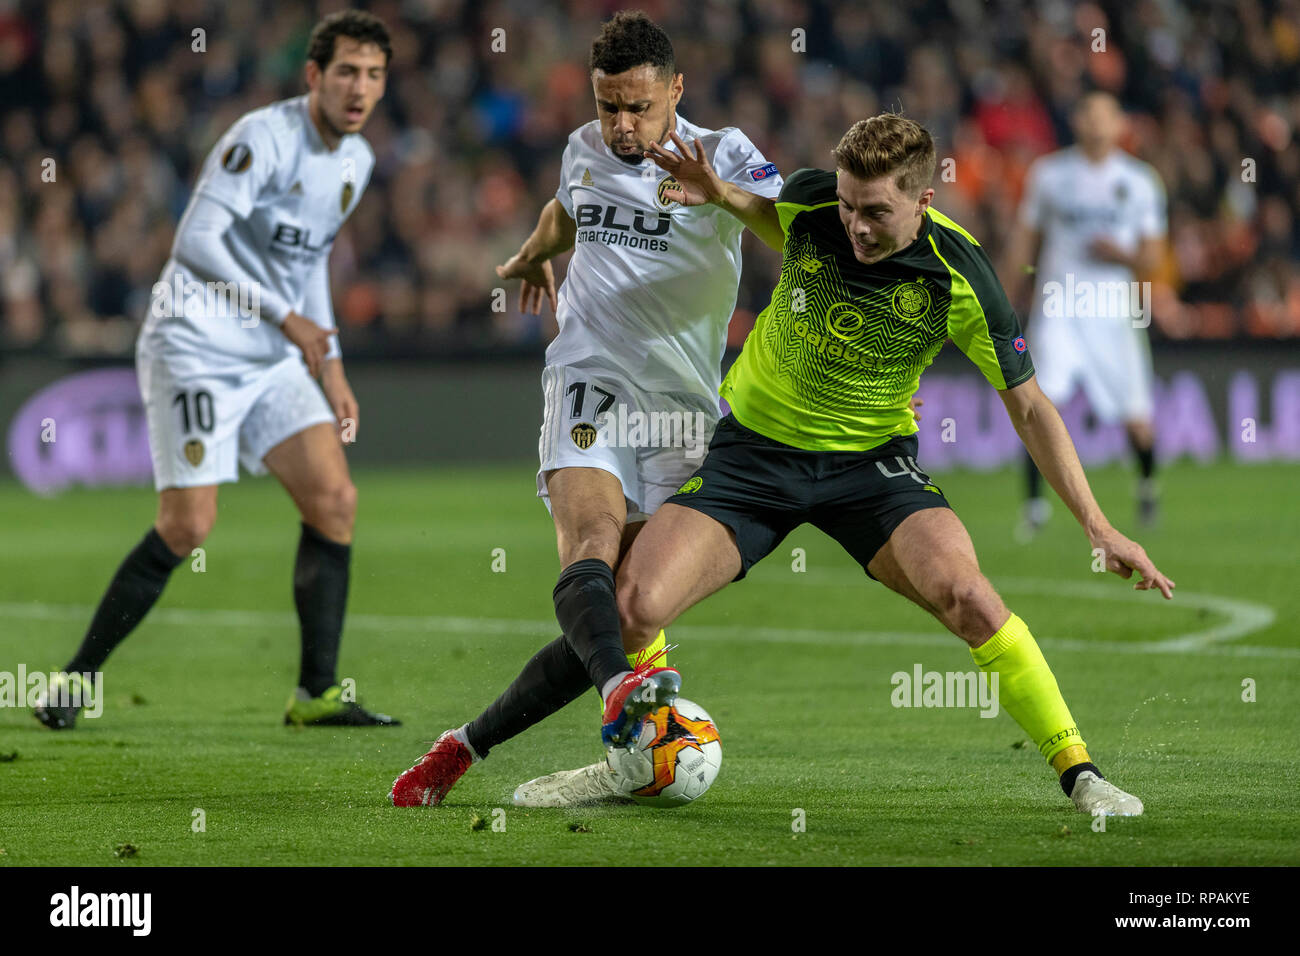 VALÊNCIA, CV - 21.02.2019: VALENCIA X CELTIC - James Forrest of Celtic and Coquelin of Valencia during the match between Valencia and Celtic held at the Mestalla in Valencia. The match is valid for Europa League 2018/2019. (Photo: Richard Callis/Fotoarena) - Stock Image